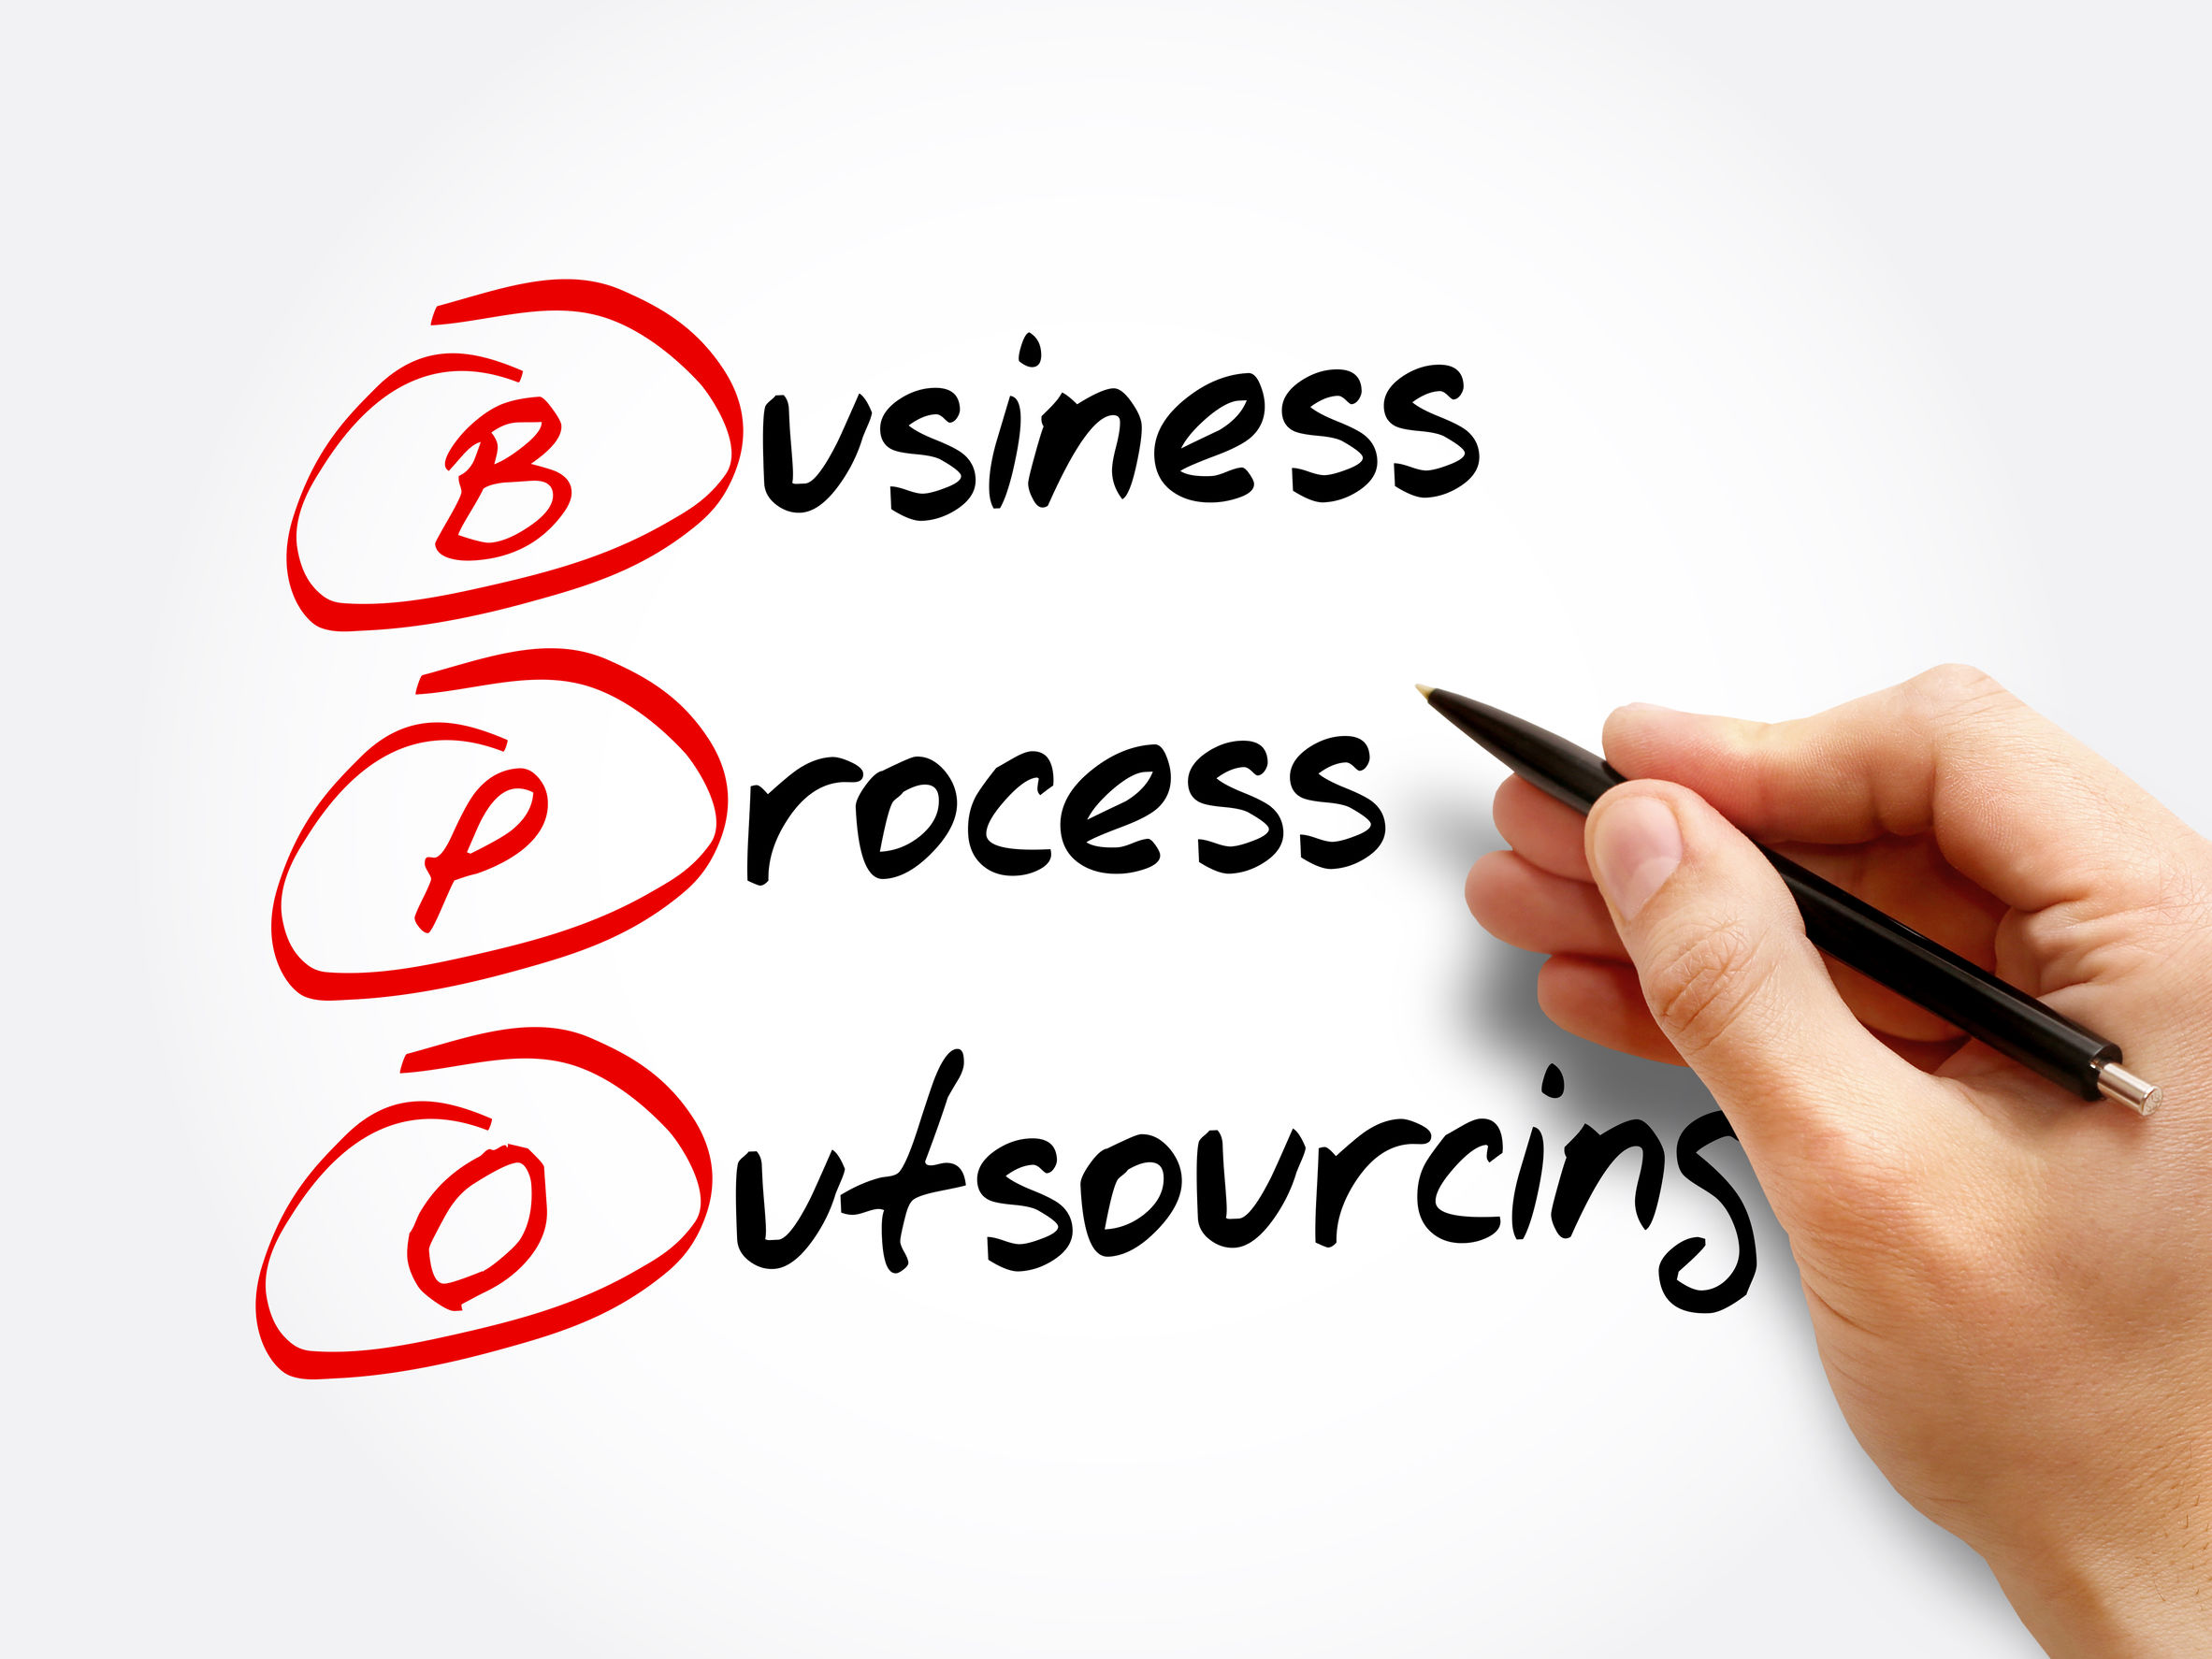 BPO - Business Process Outsourcing, acronym